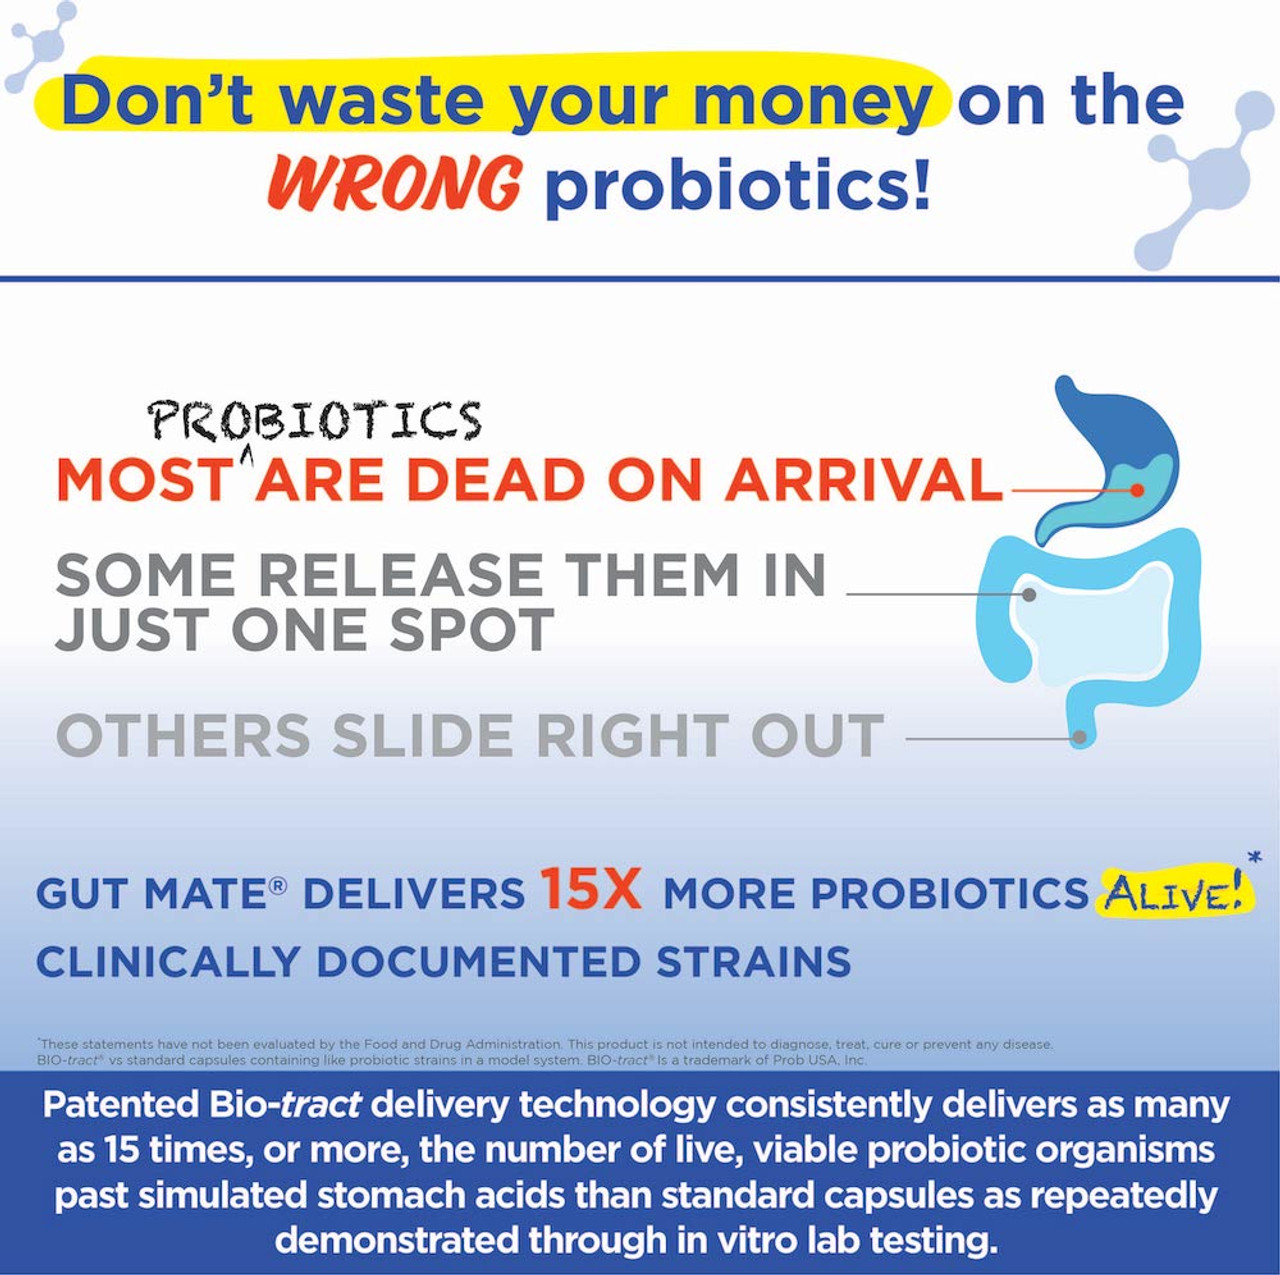 Don't Waste your money on wrong probiotics. Most are DOA. Other slide right out.